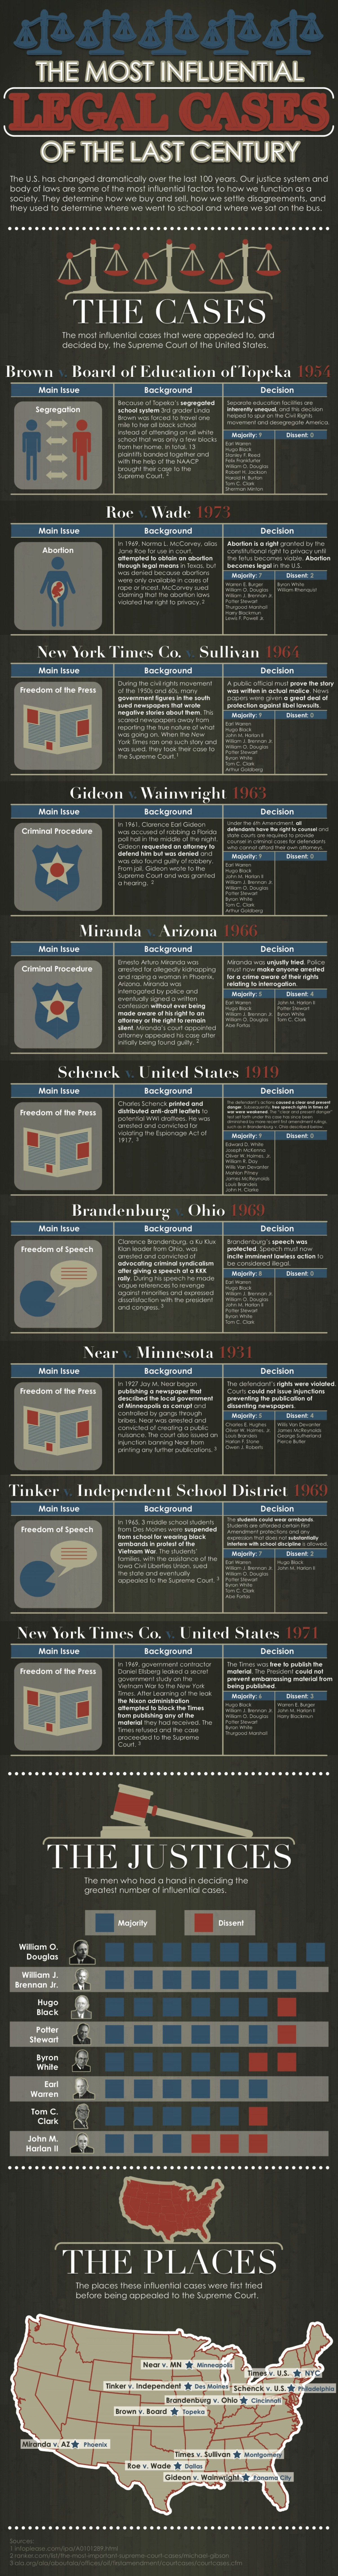 Most influential legal cases